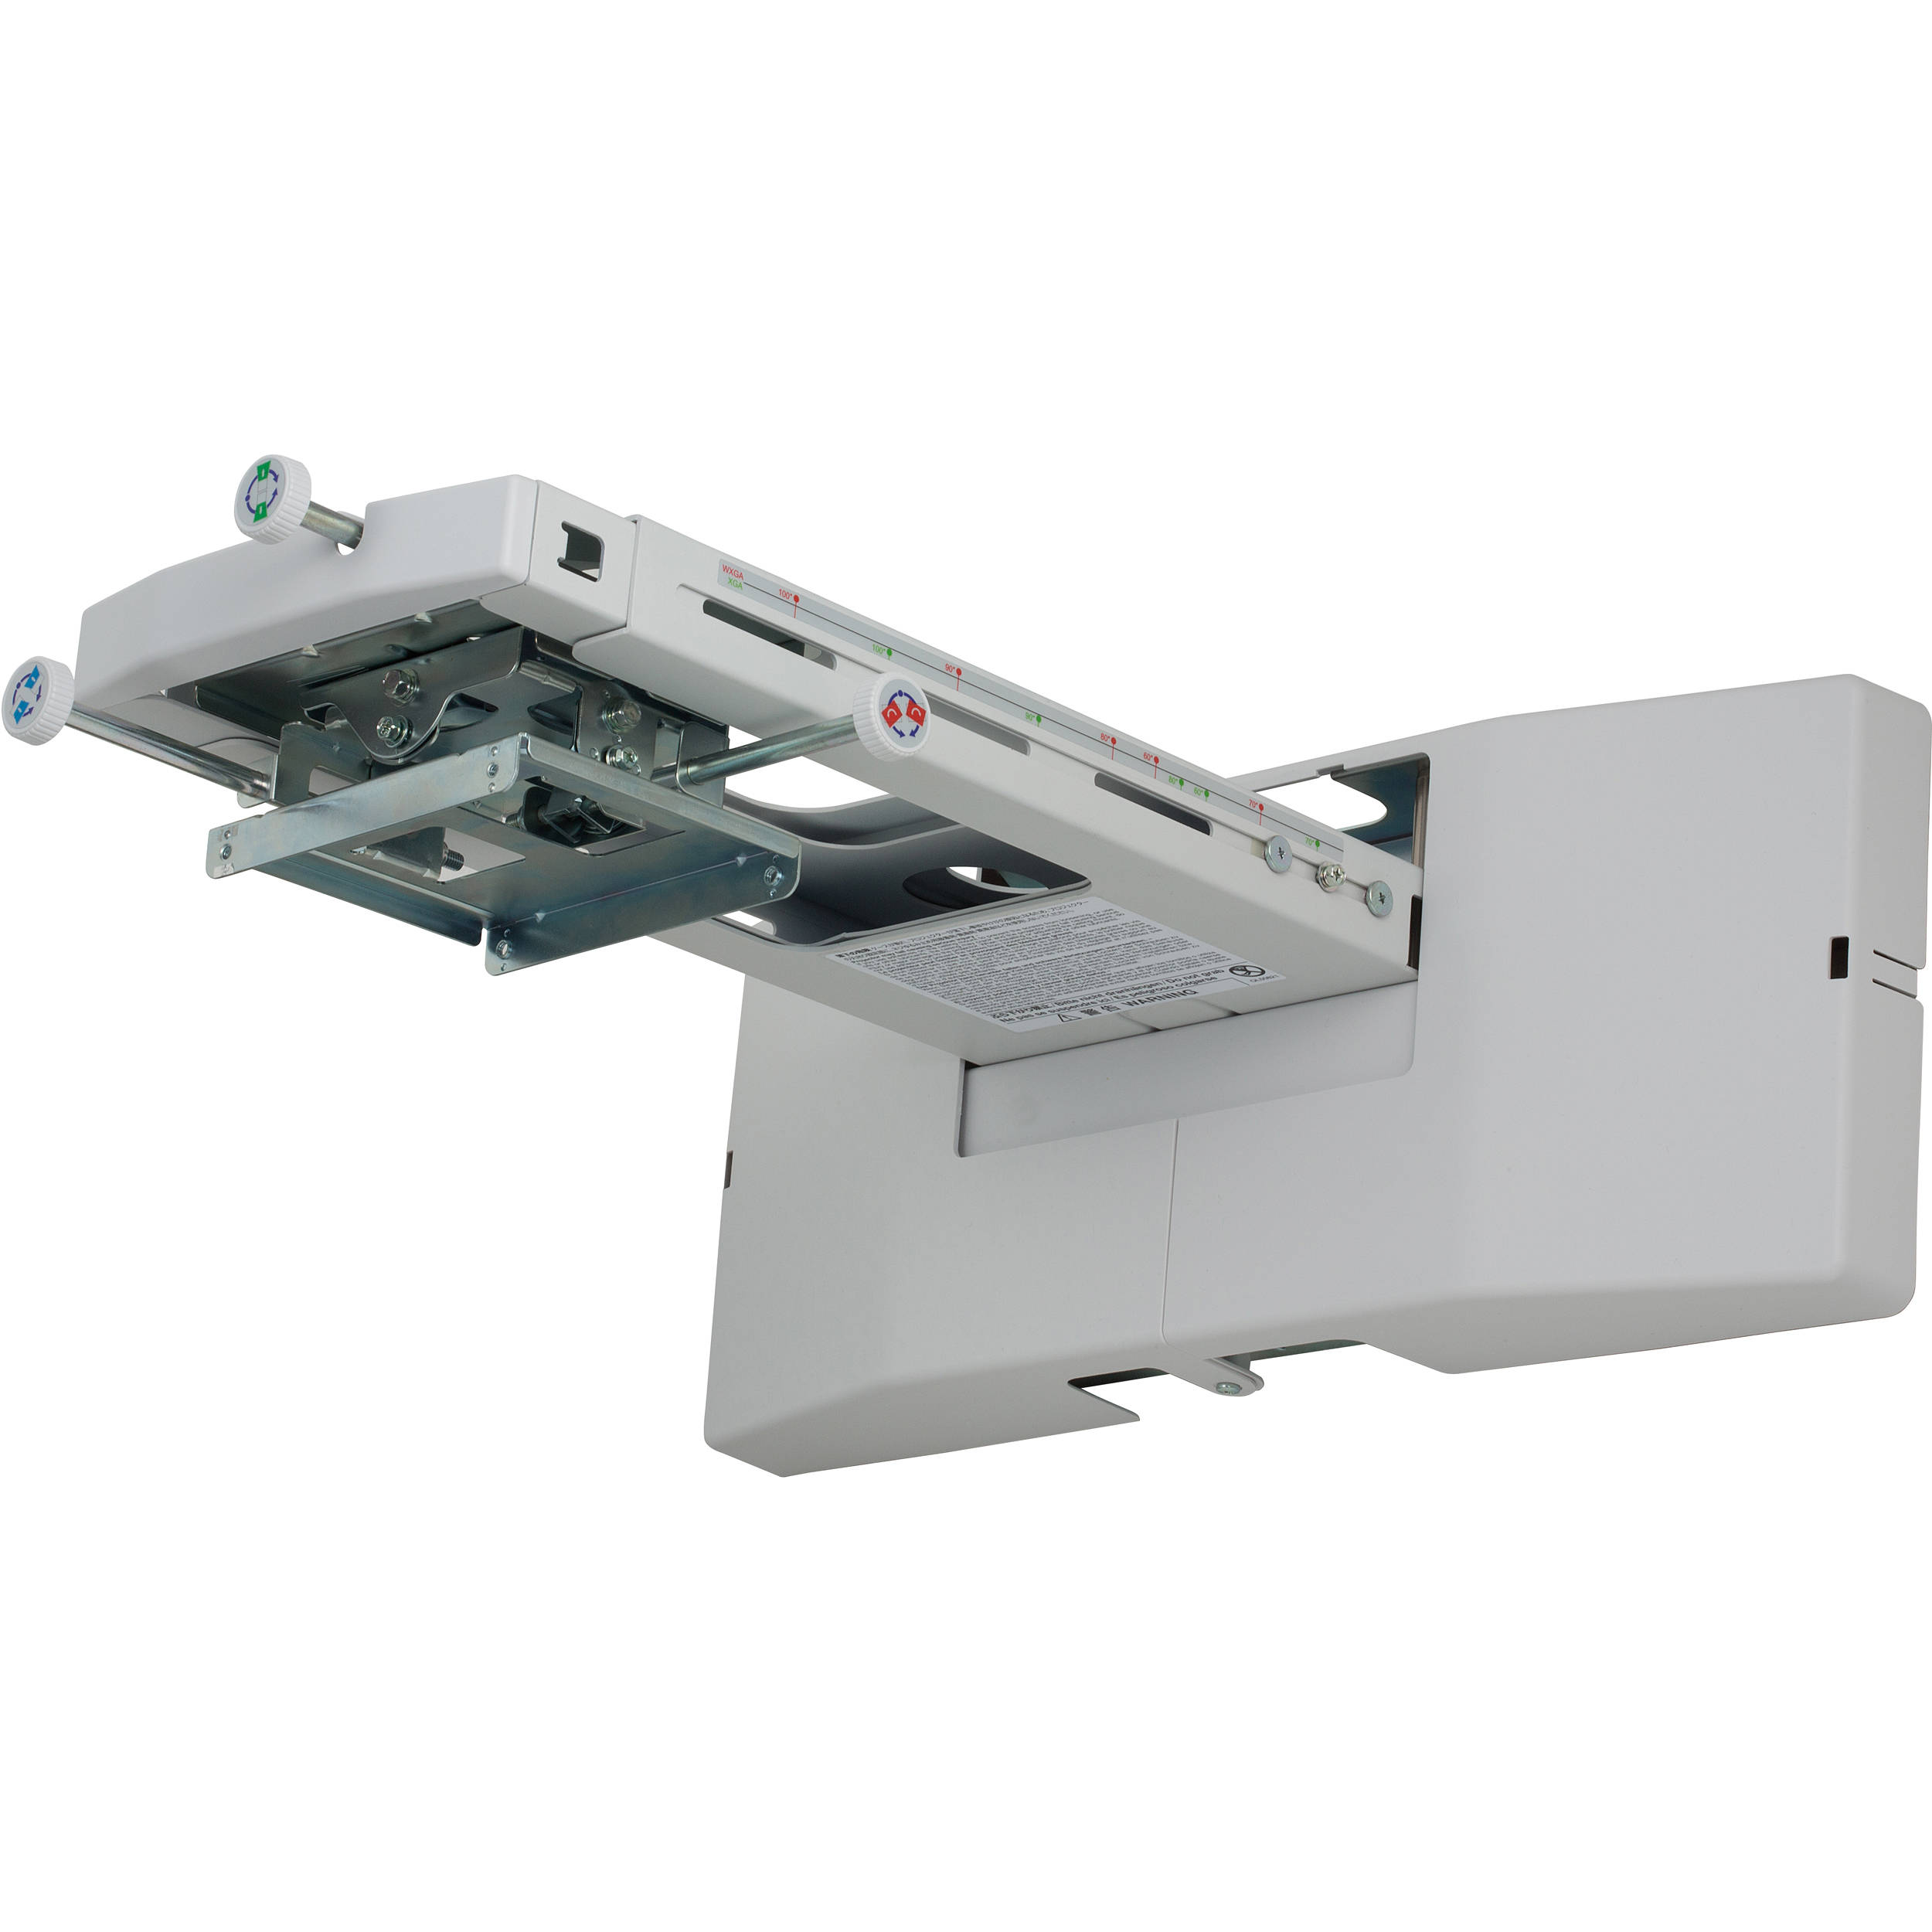 Hitachi Has Wm05 Wall Mount For Cp Ax2503 Ax3503